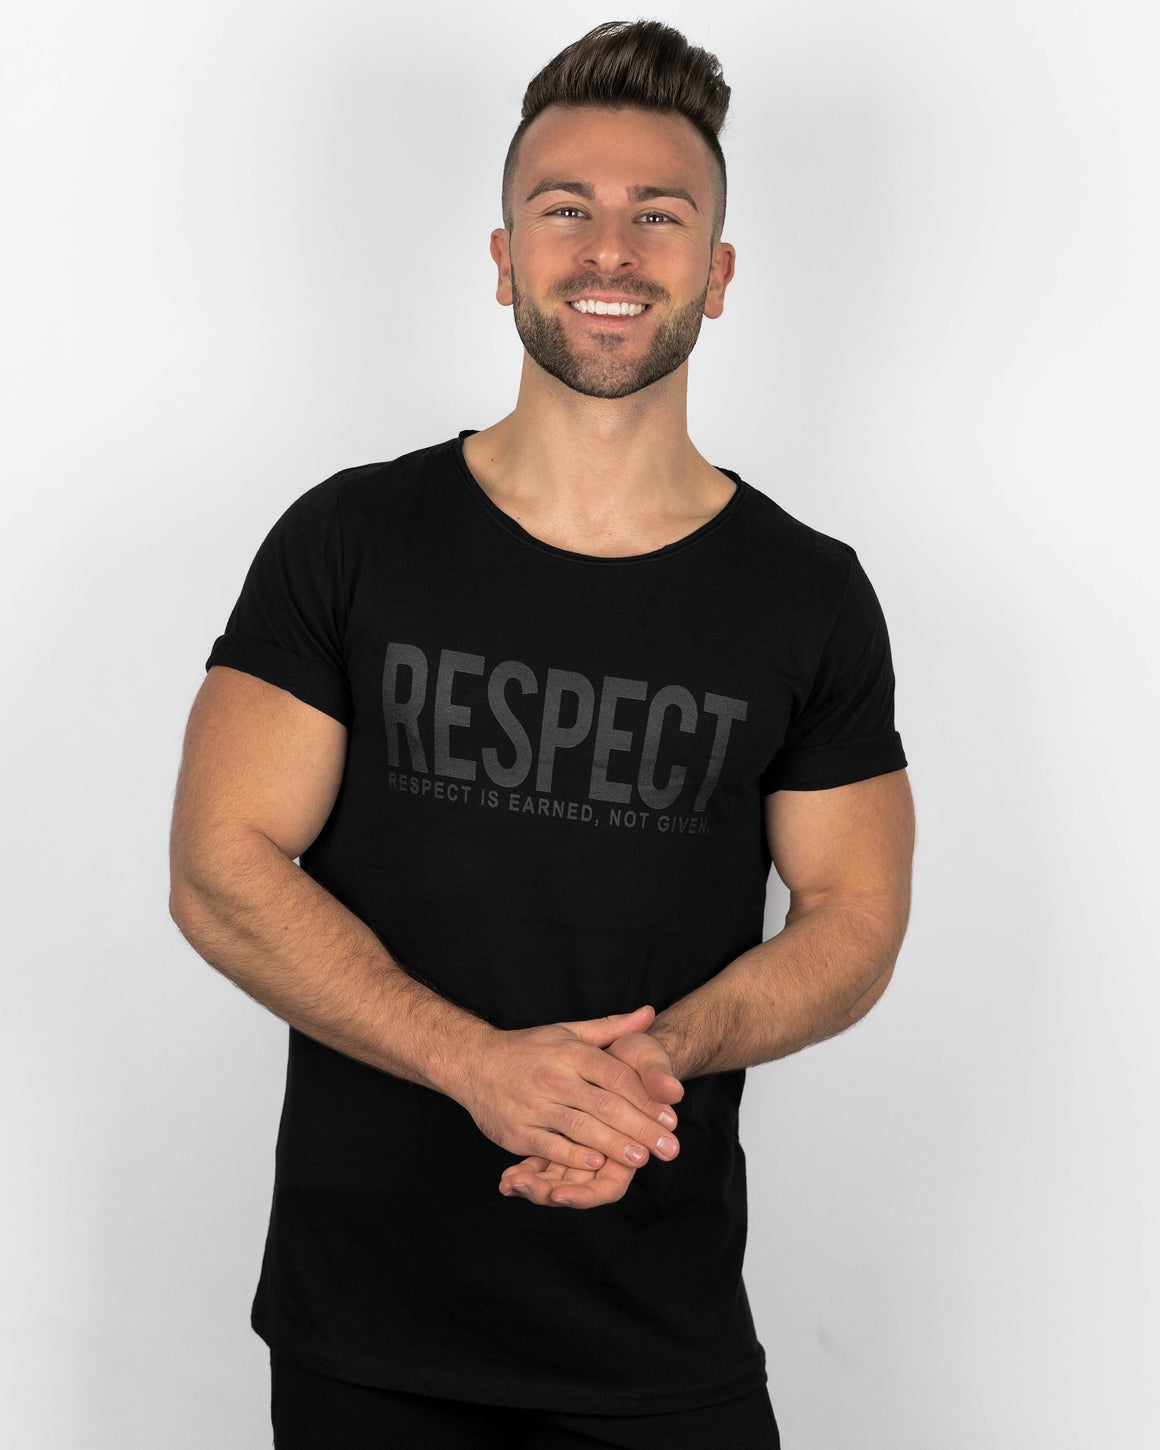 RESPECT Raw Scoop Neck Tee - Black on Black